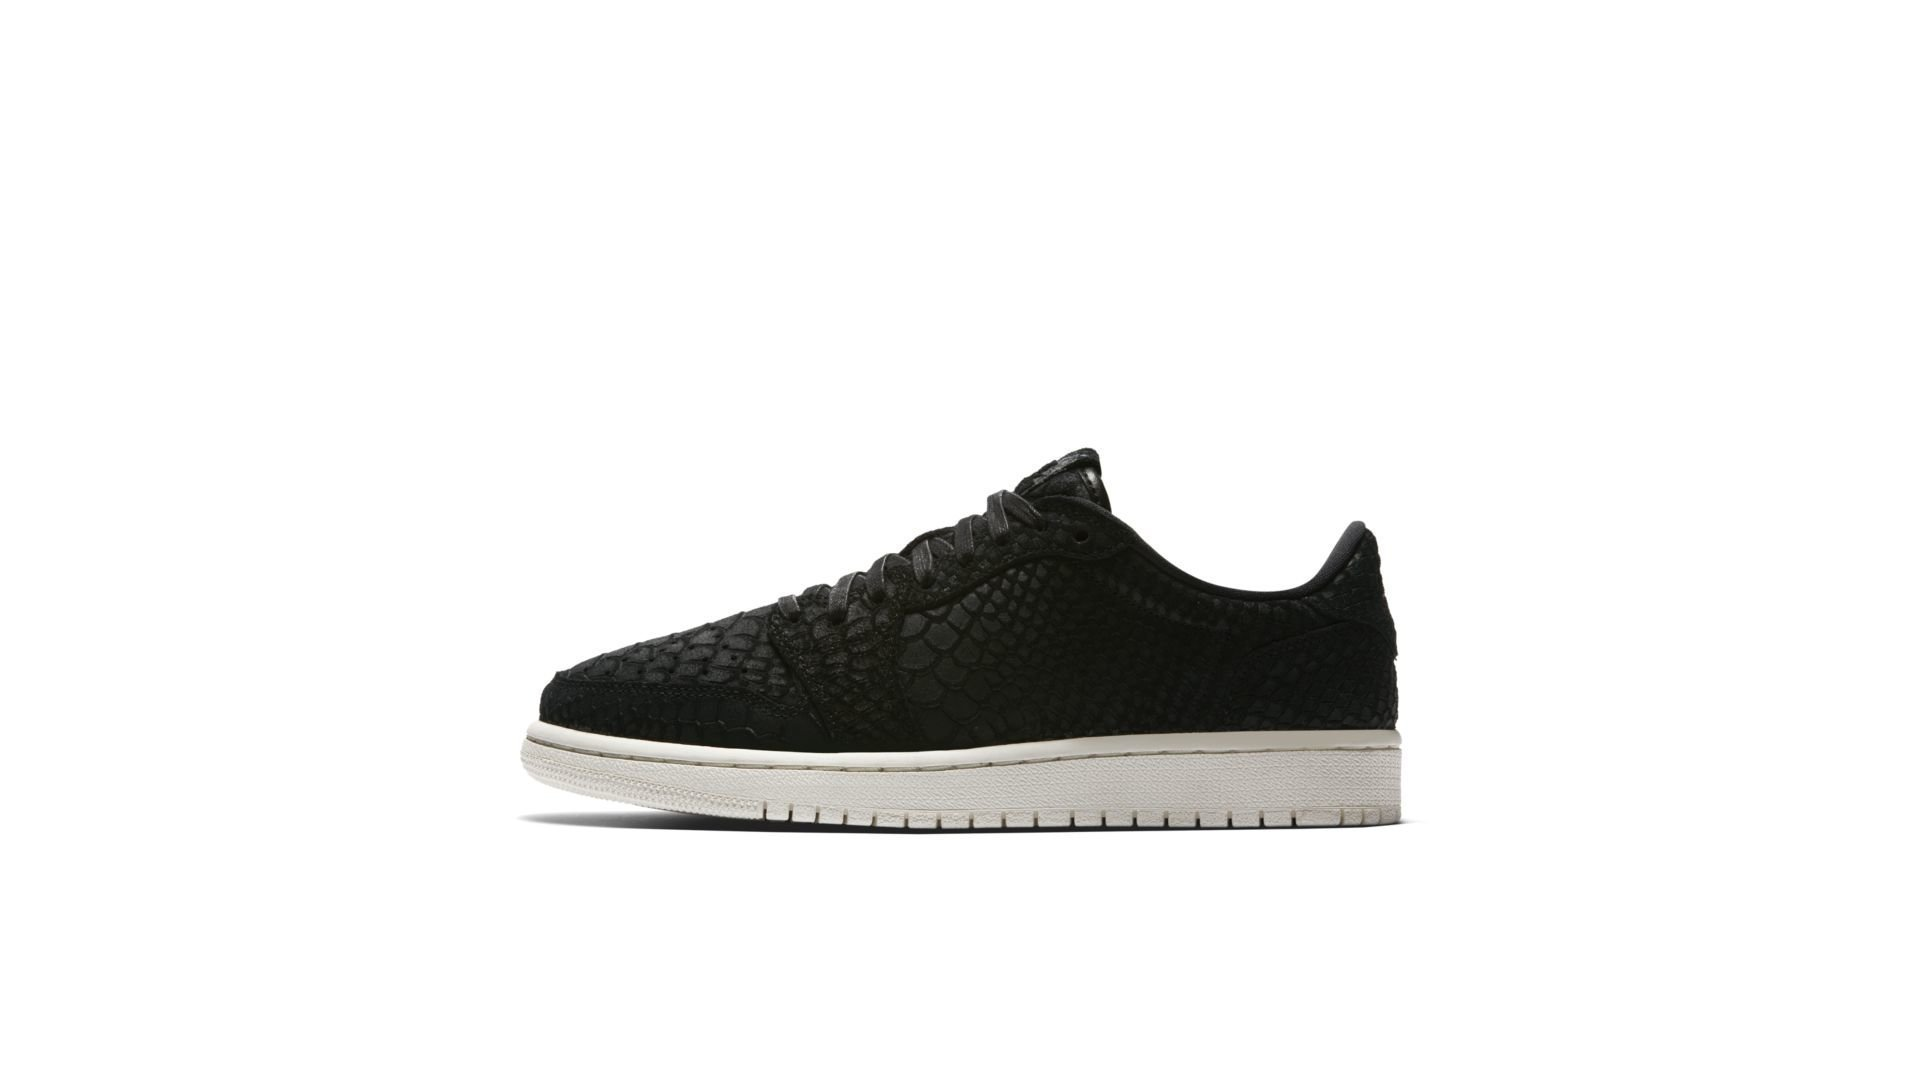 Jordan 1 Retro Low NS Black Python (W) (AJ6004-010)